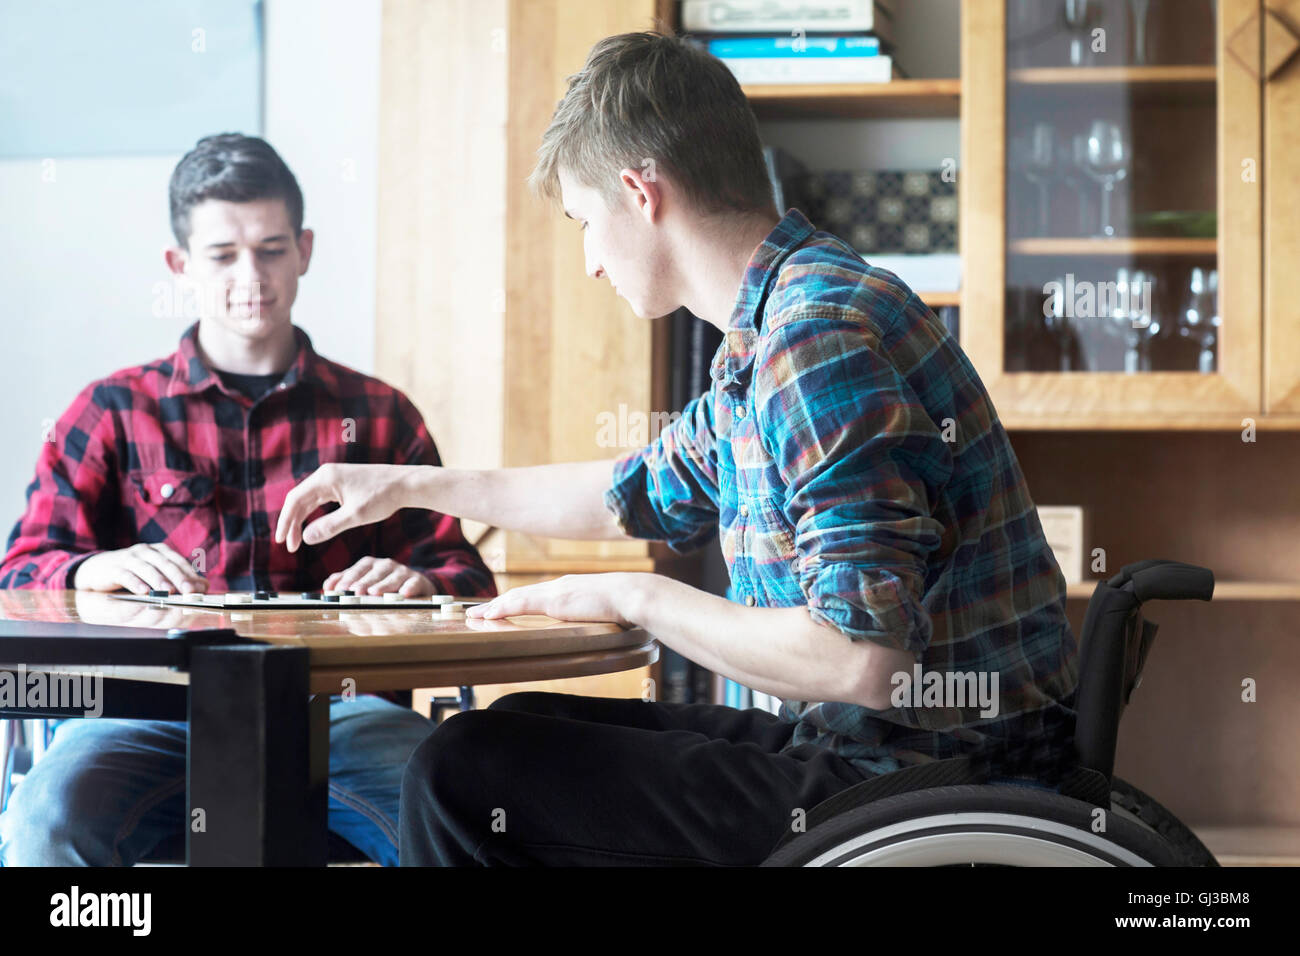 Young man using wheelchair playing draughts with friend in kitchen - Stock Image